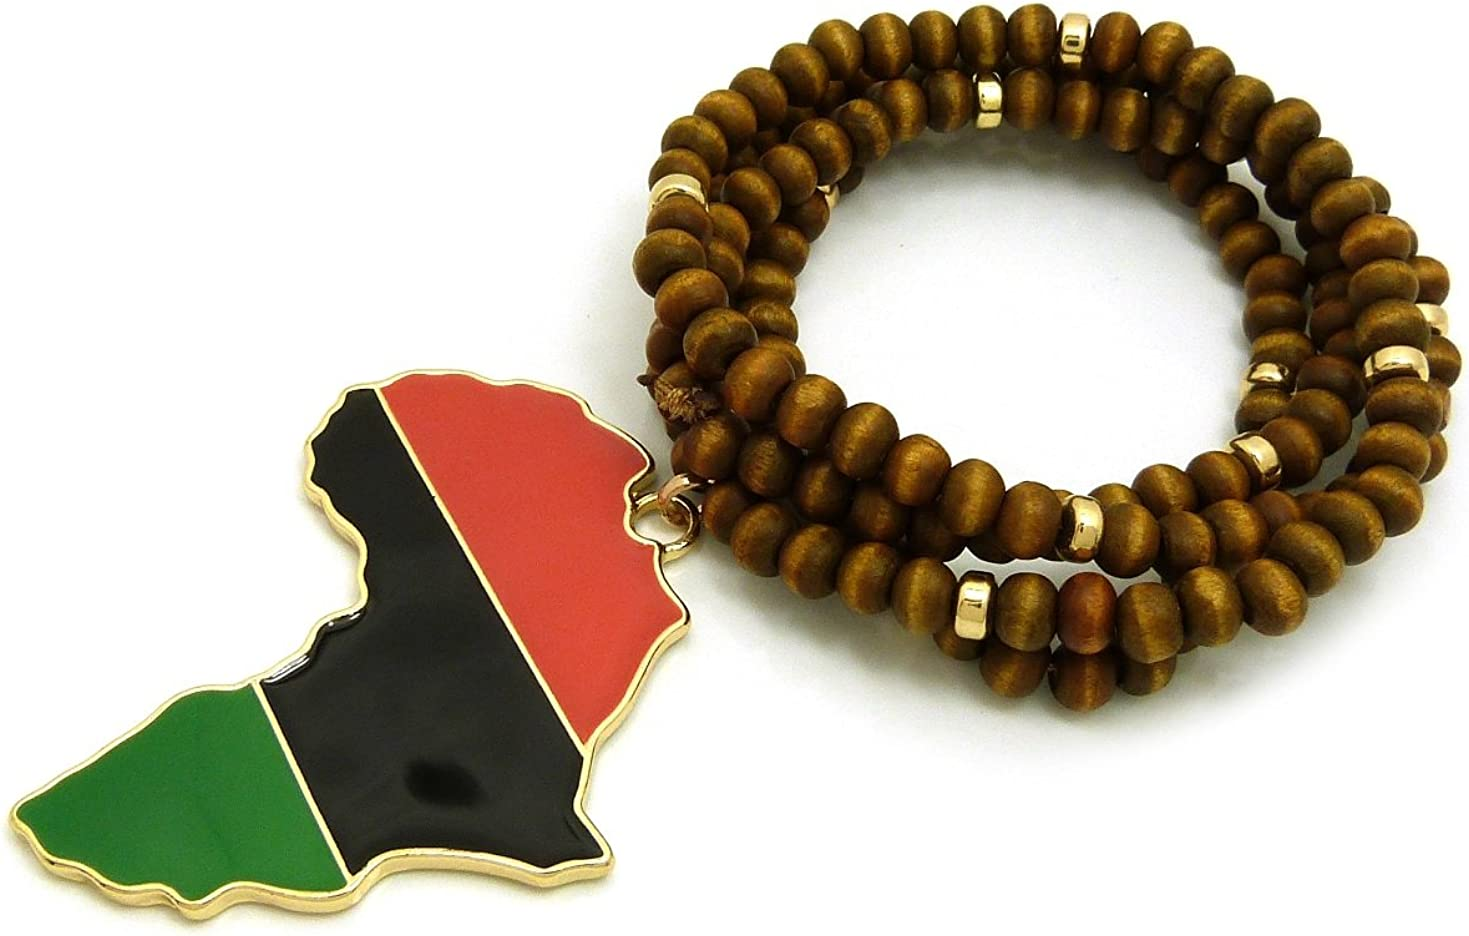 NYFASHION101 Pan Africa Continent Pendant with 6mm 30 Wooden Bead and Metal Disc Necklace